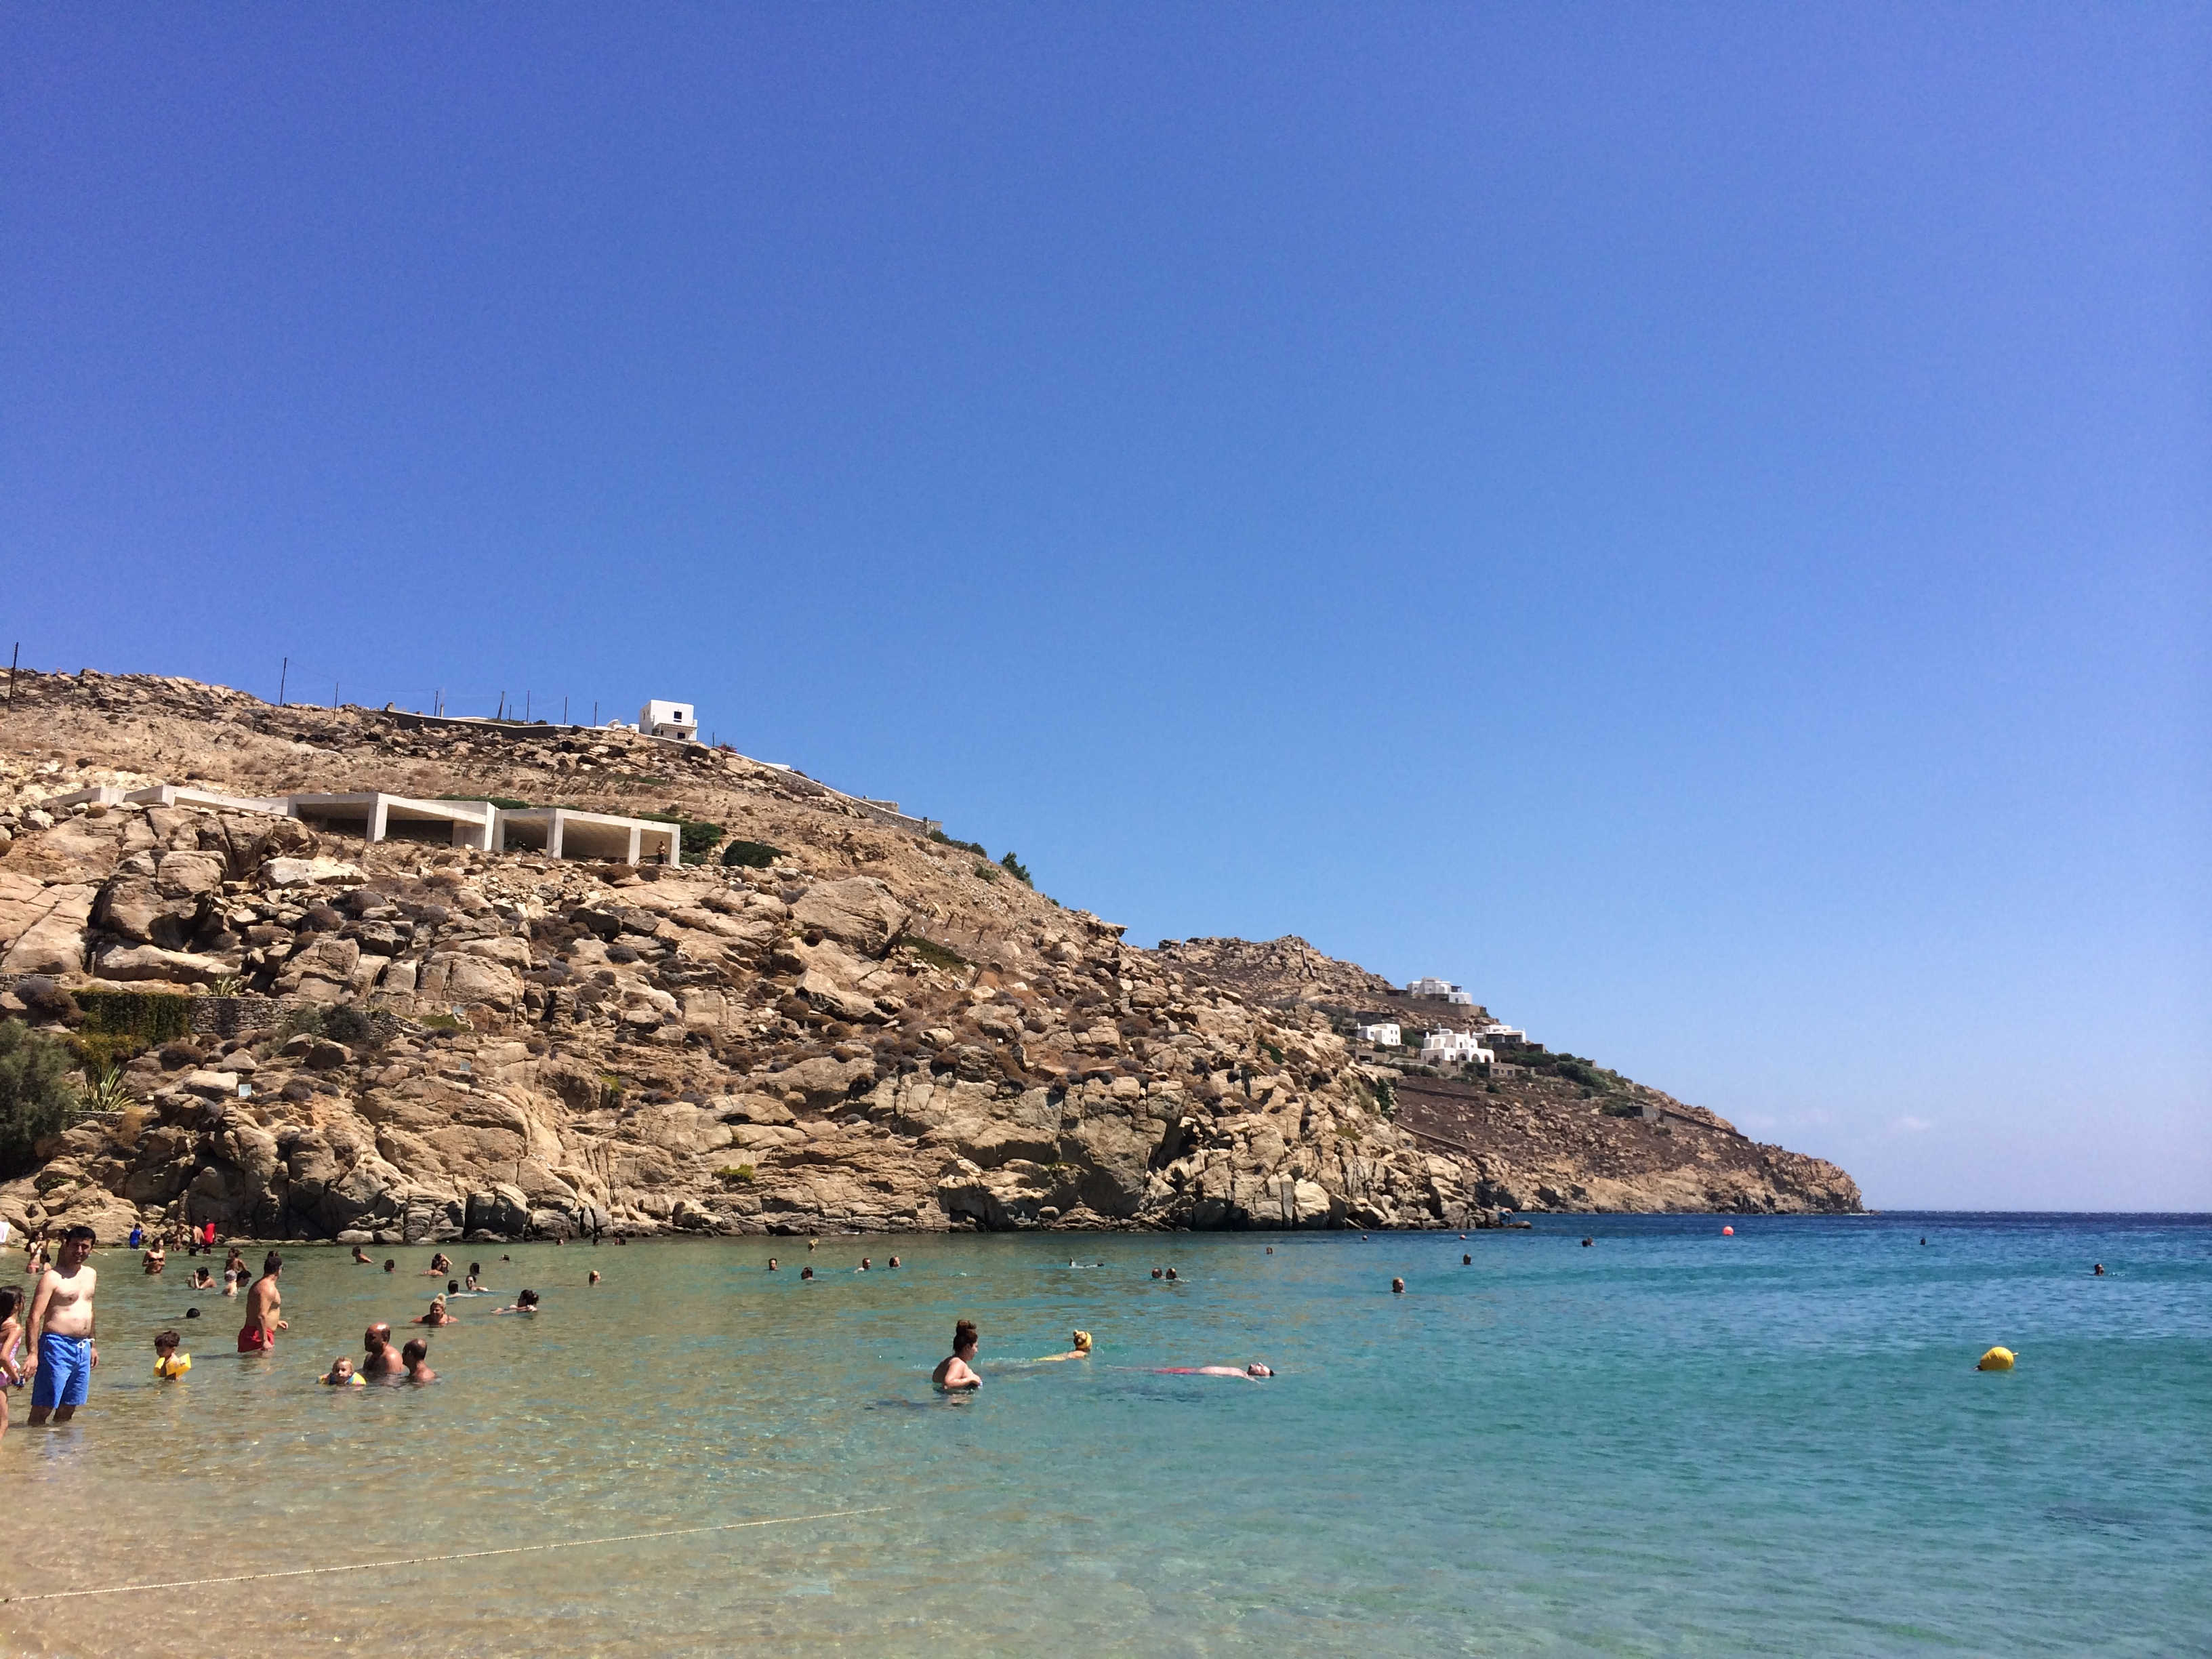 Best Island Beaches For Partying Mykonos St Barts: No Need For Introductions